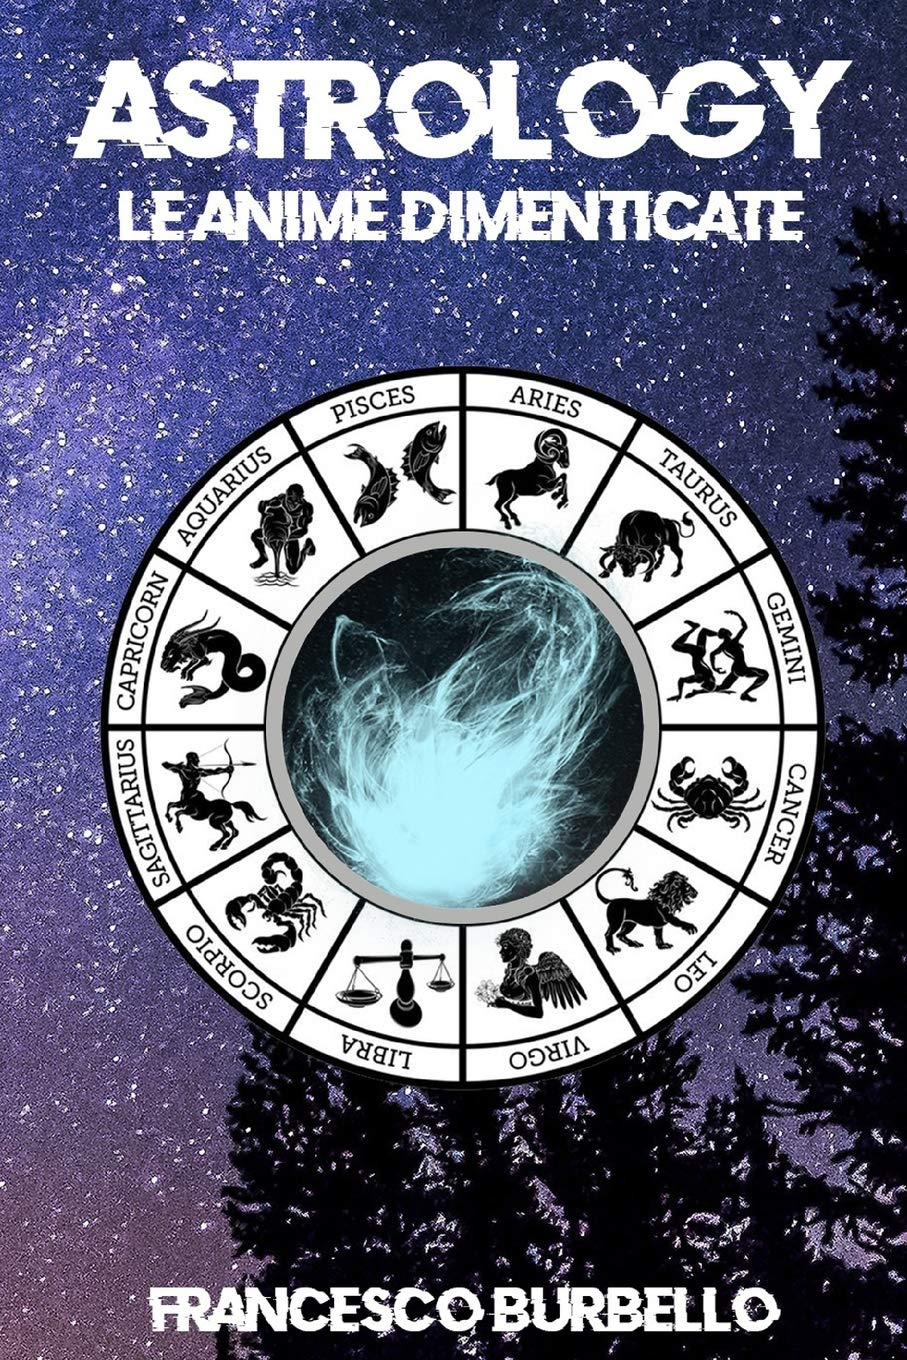 Astrology: Le anime dimenticate: Amazon.es: Francesco Burbello: Libros en idiomas extranjeros